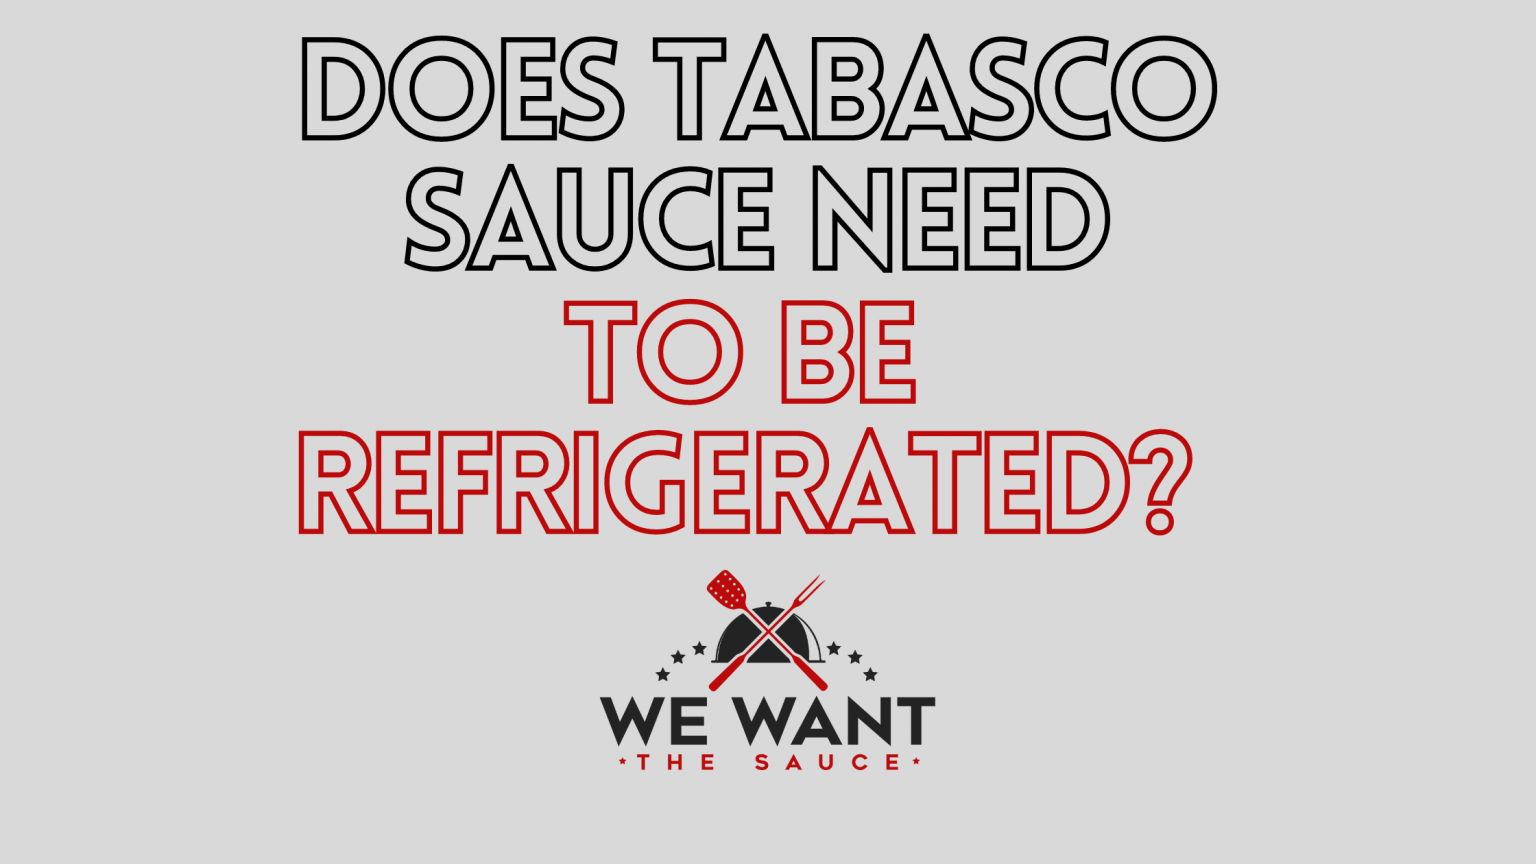 Does Tabasco Sauce Need To Be Refrigerated